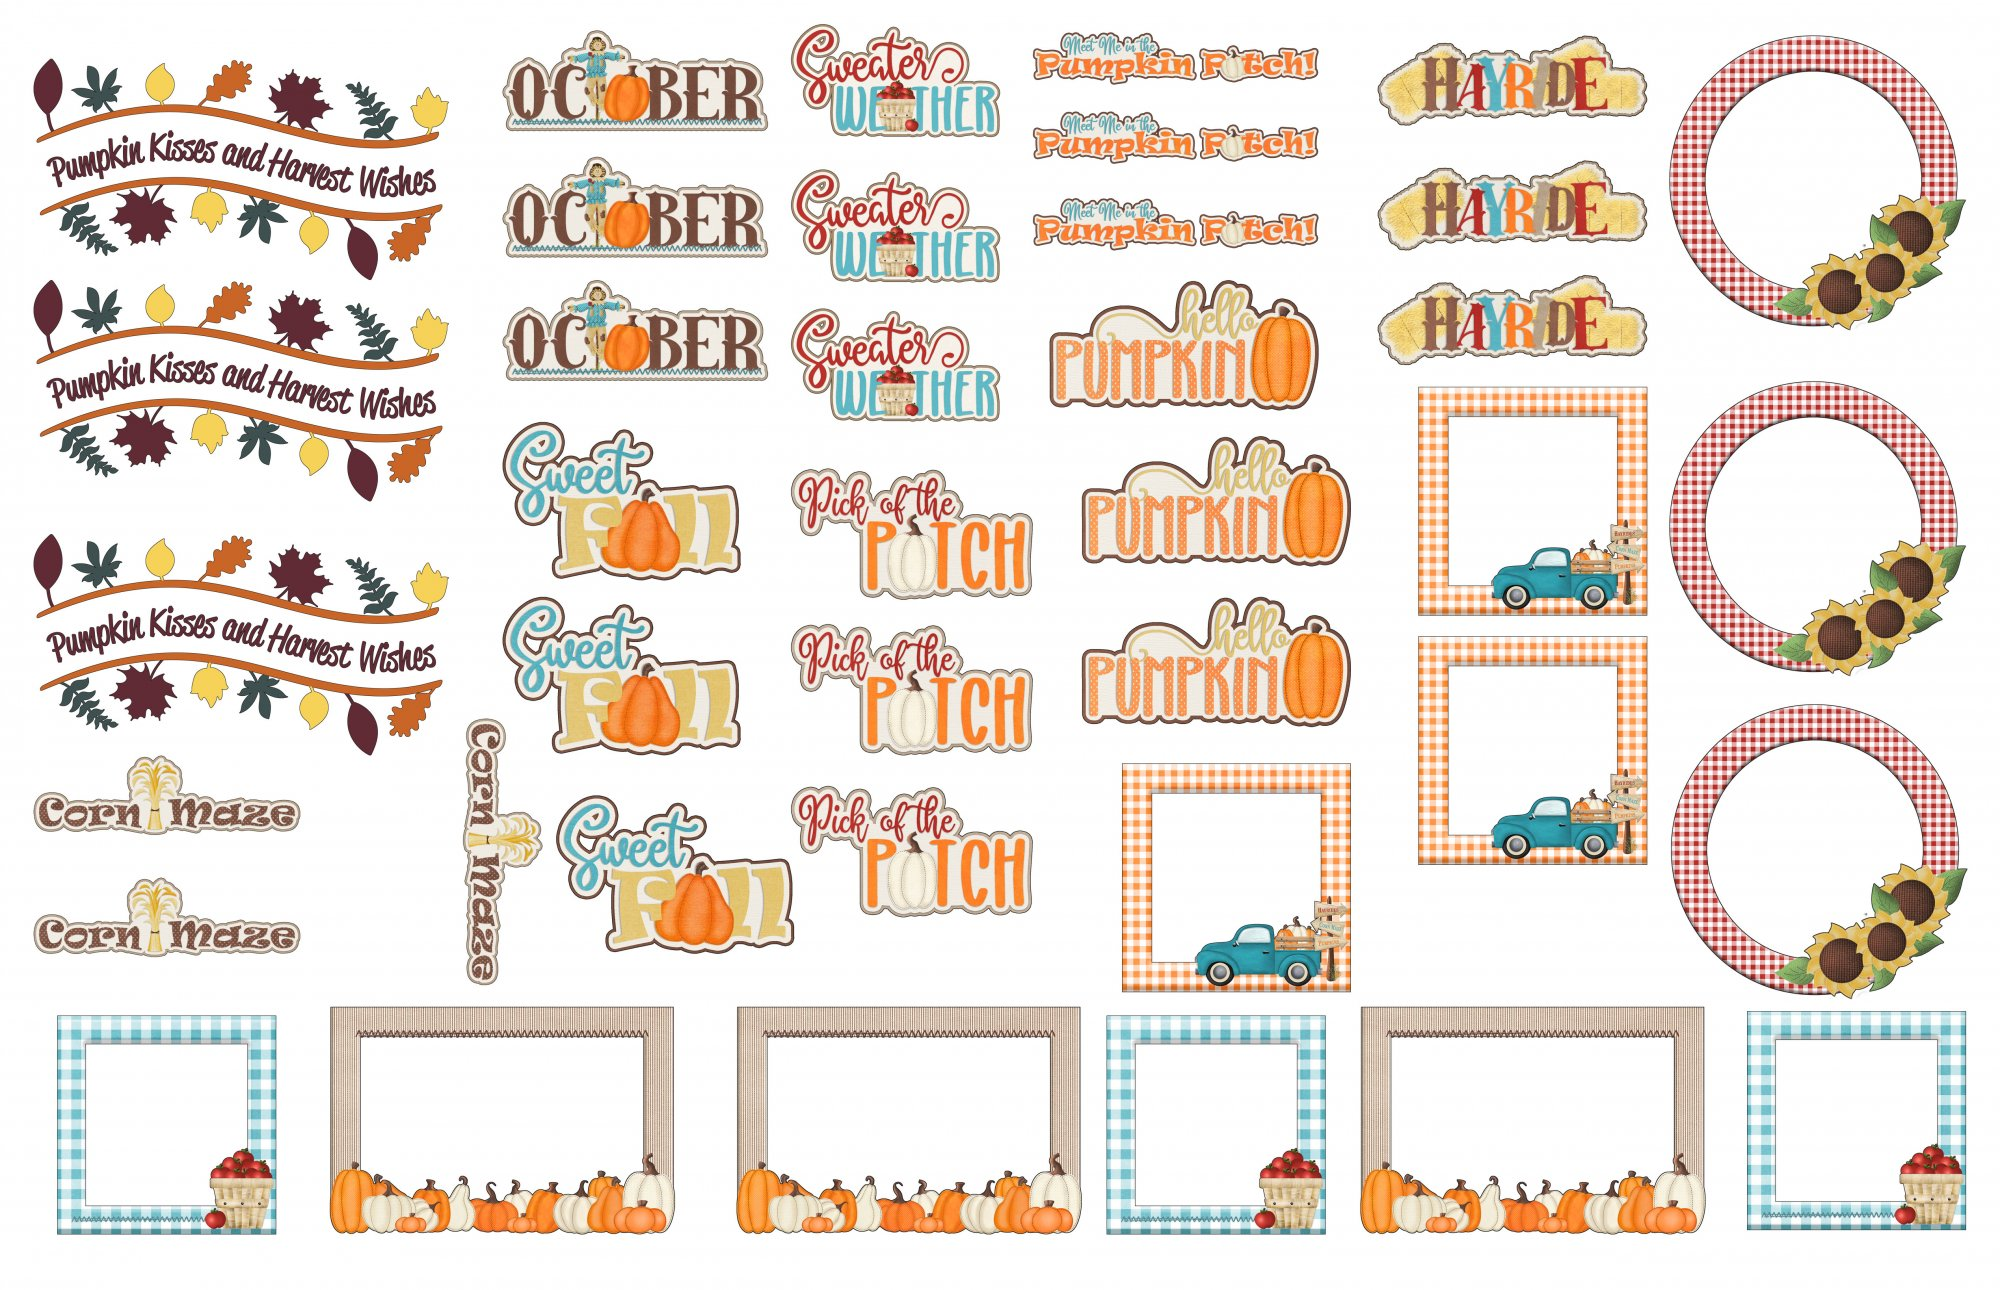 SFL Ephemera Pumpkin Patches and Harvest Wishes, frames and sentiments